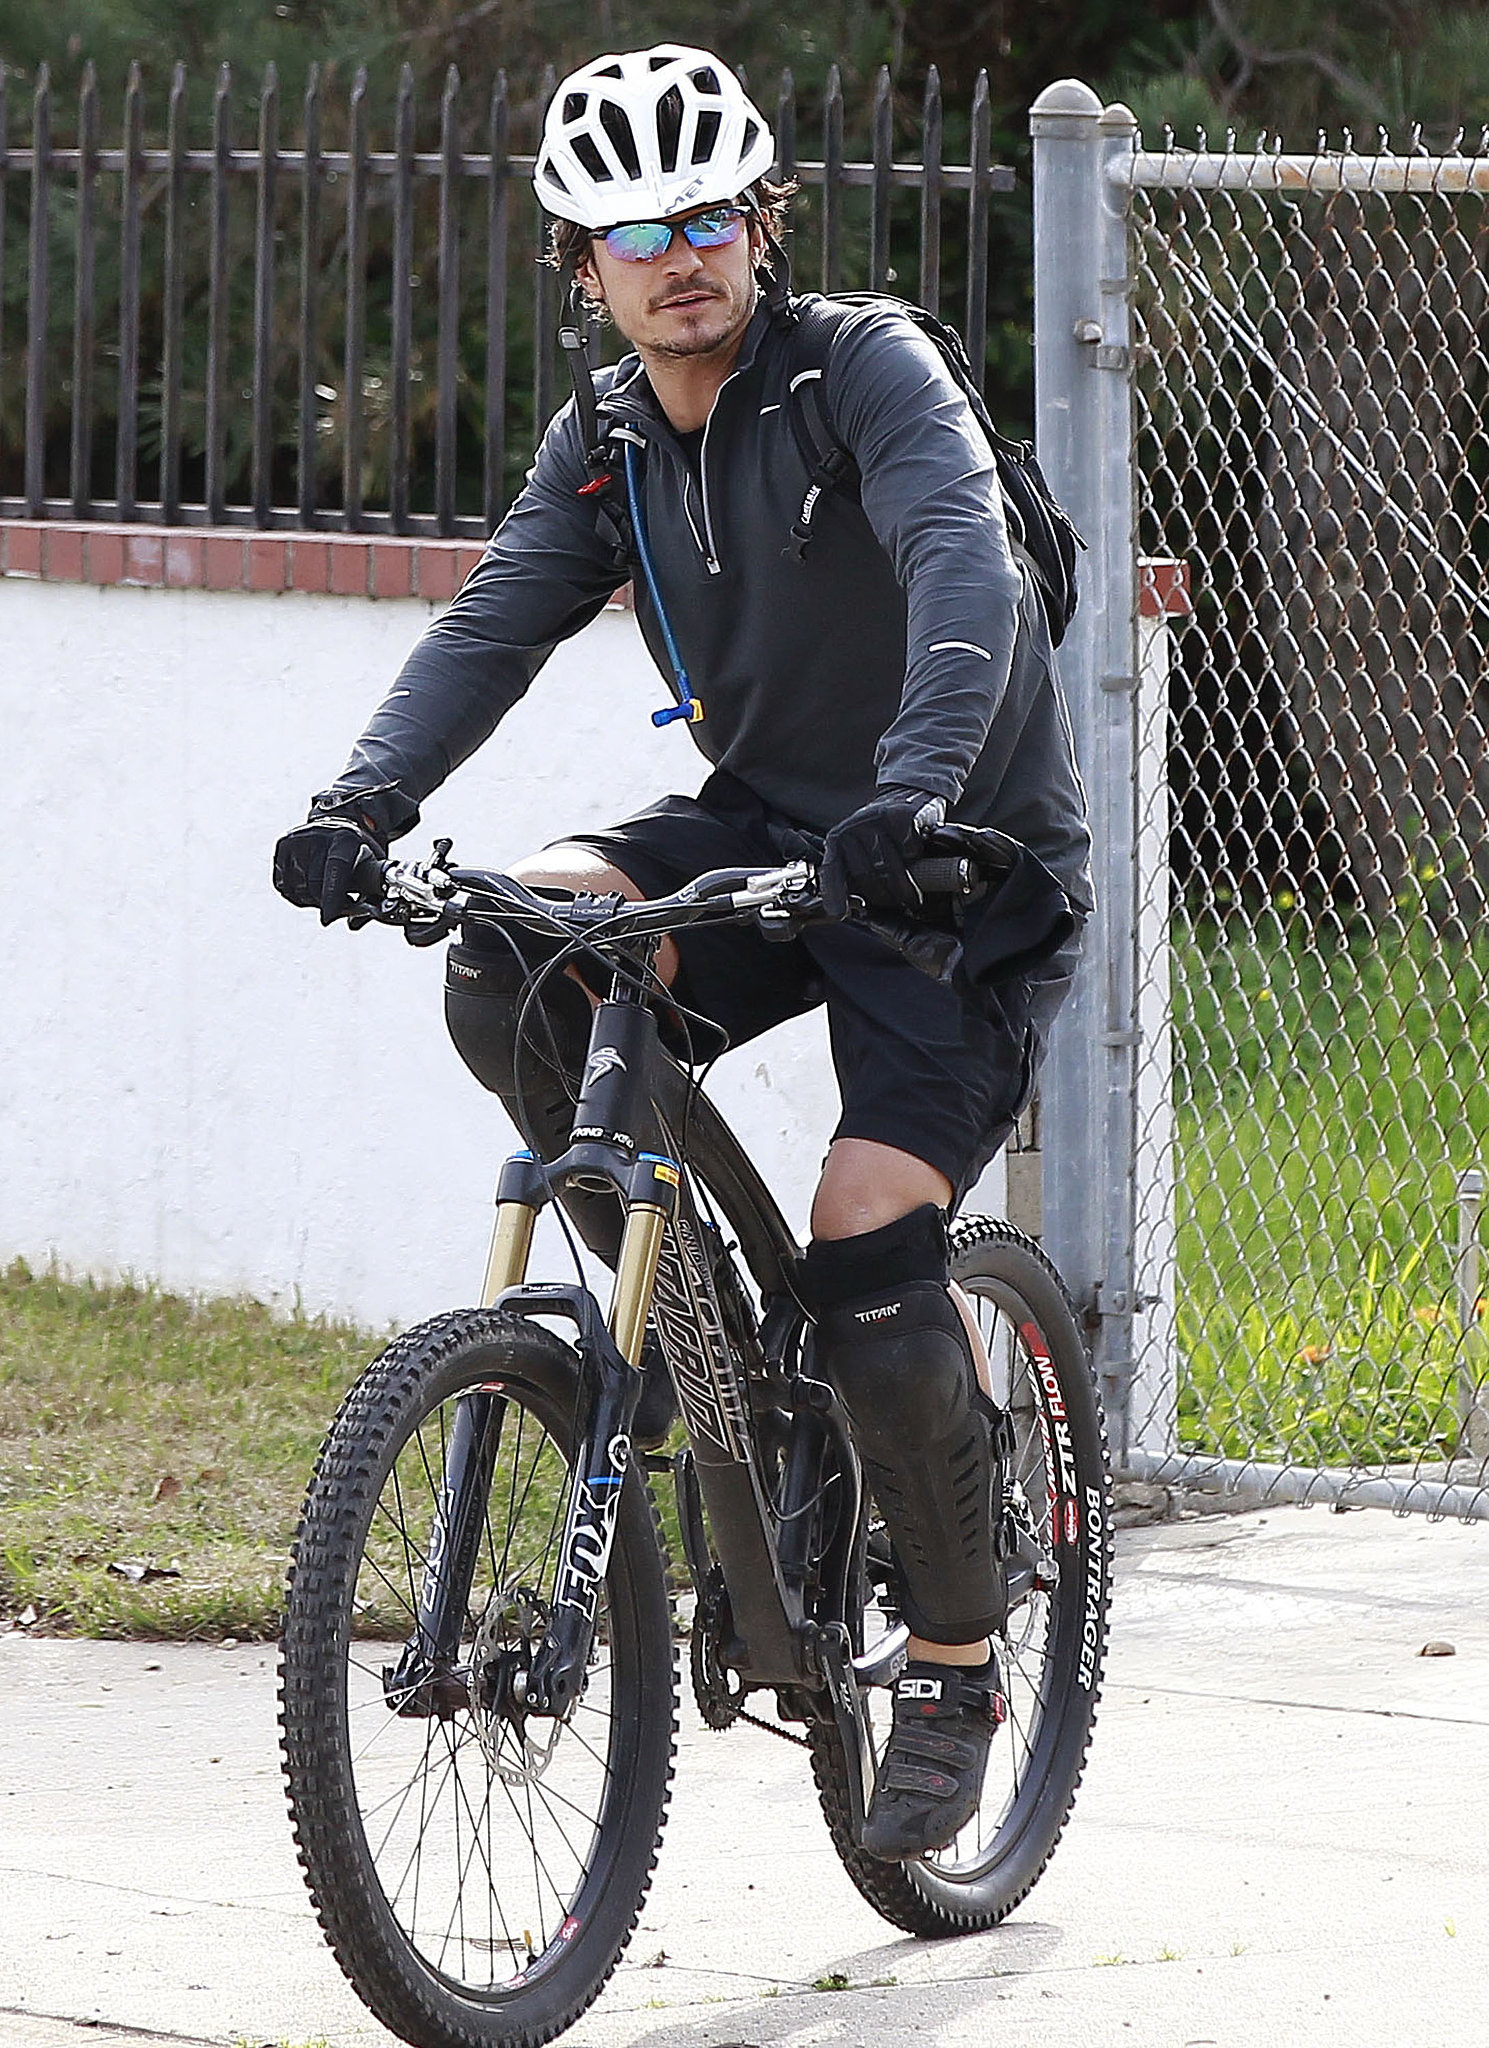 Orlando Bloom looked like he was prepared for a serious ride in February in LA.